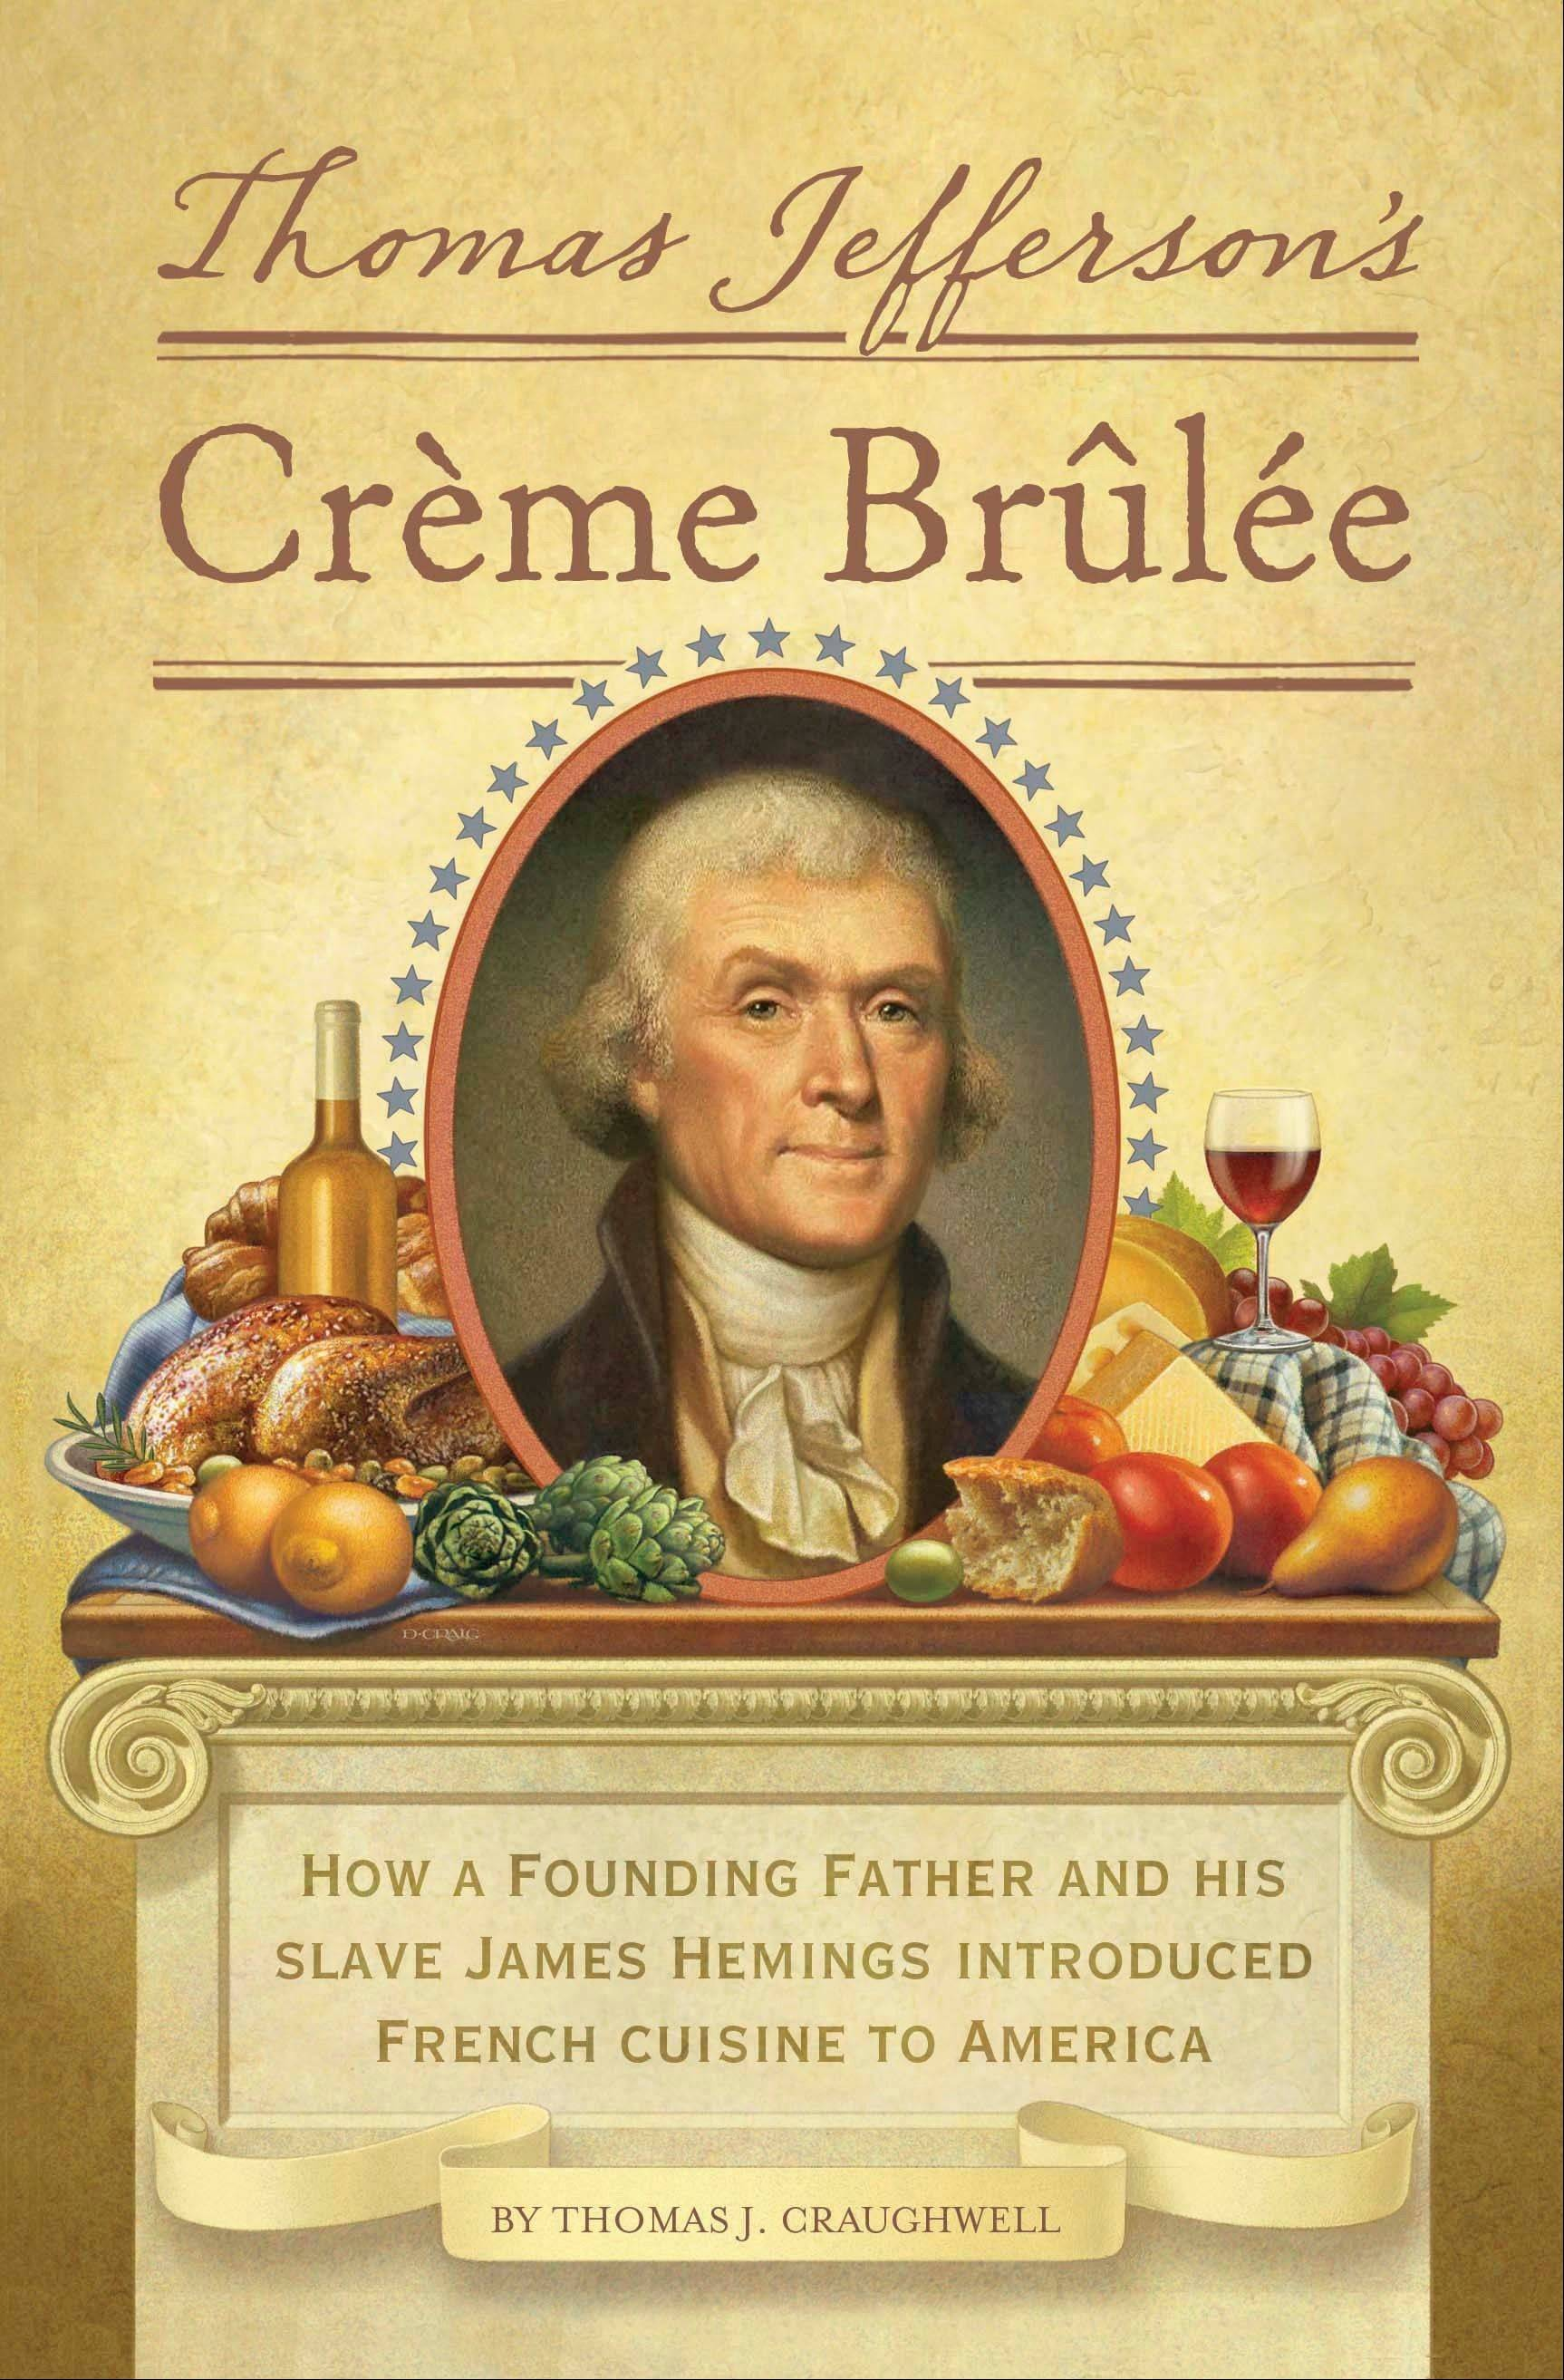 This book cover image released by Quirk Books shows �Thomas Jefferson�s Creme Brulee: How a Founding Father and His Slave James Hemings Introduced French Cuisine to America,� by Thomas J. Craughwell.